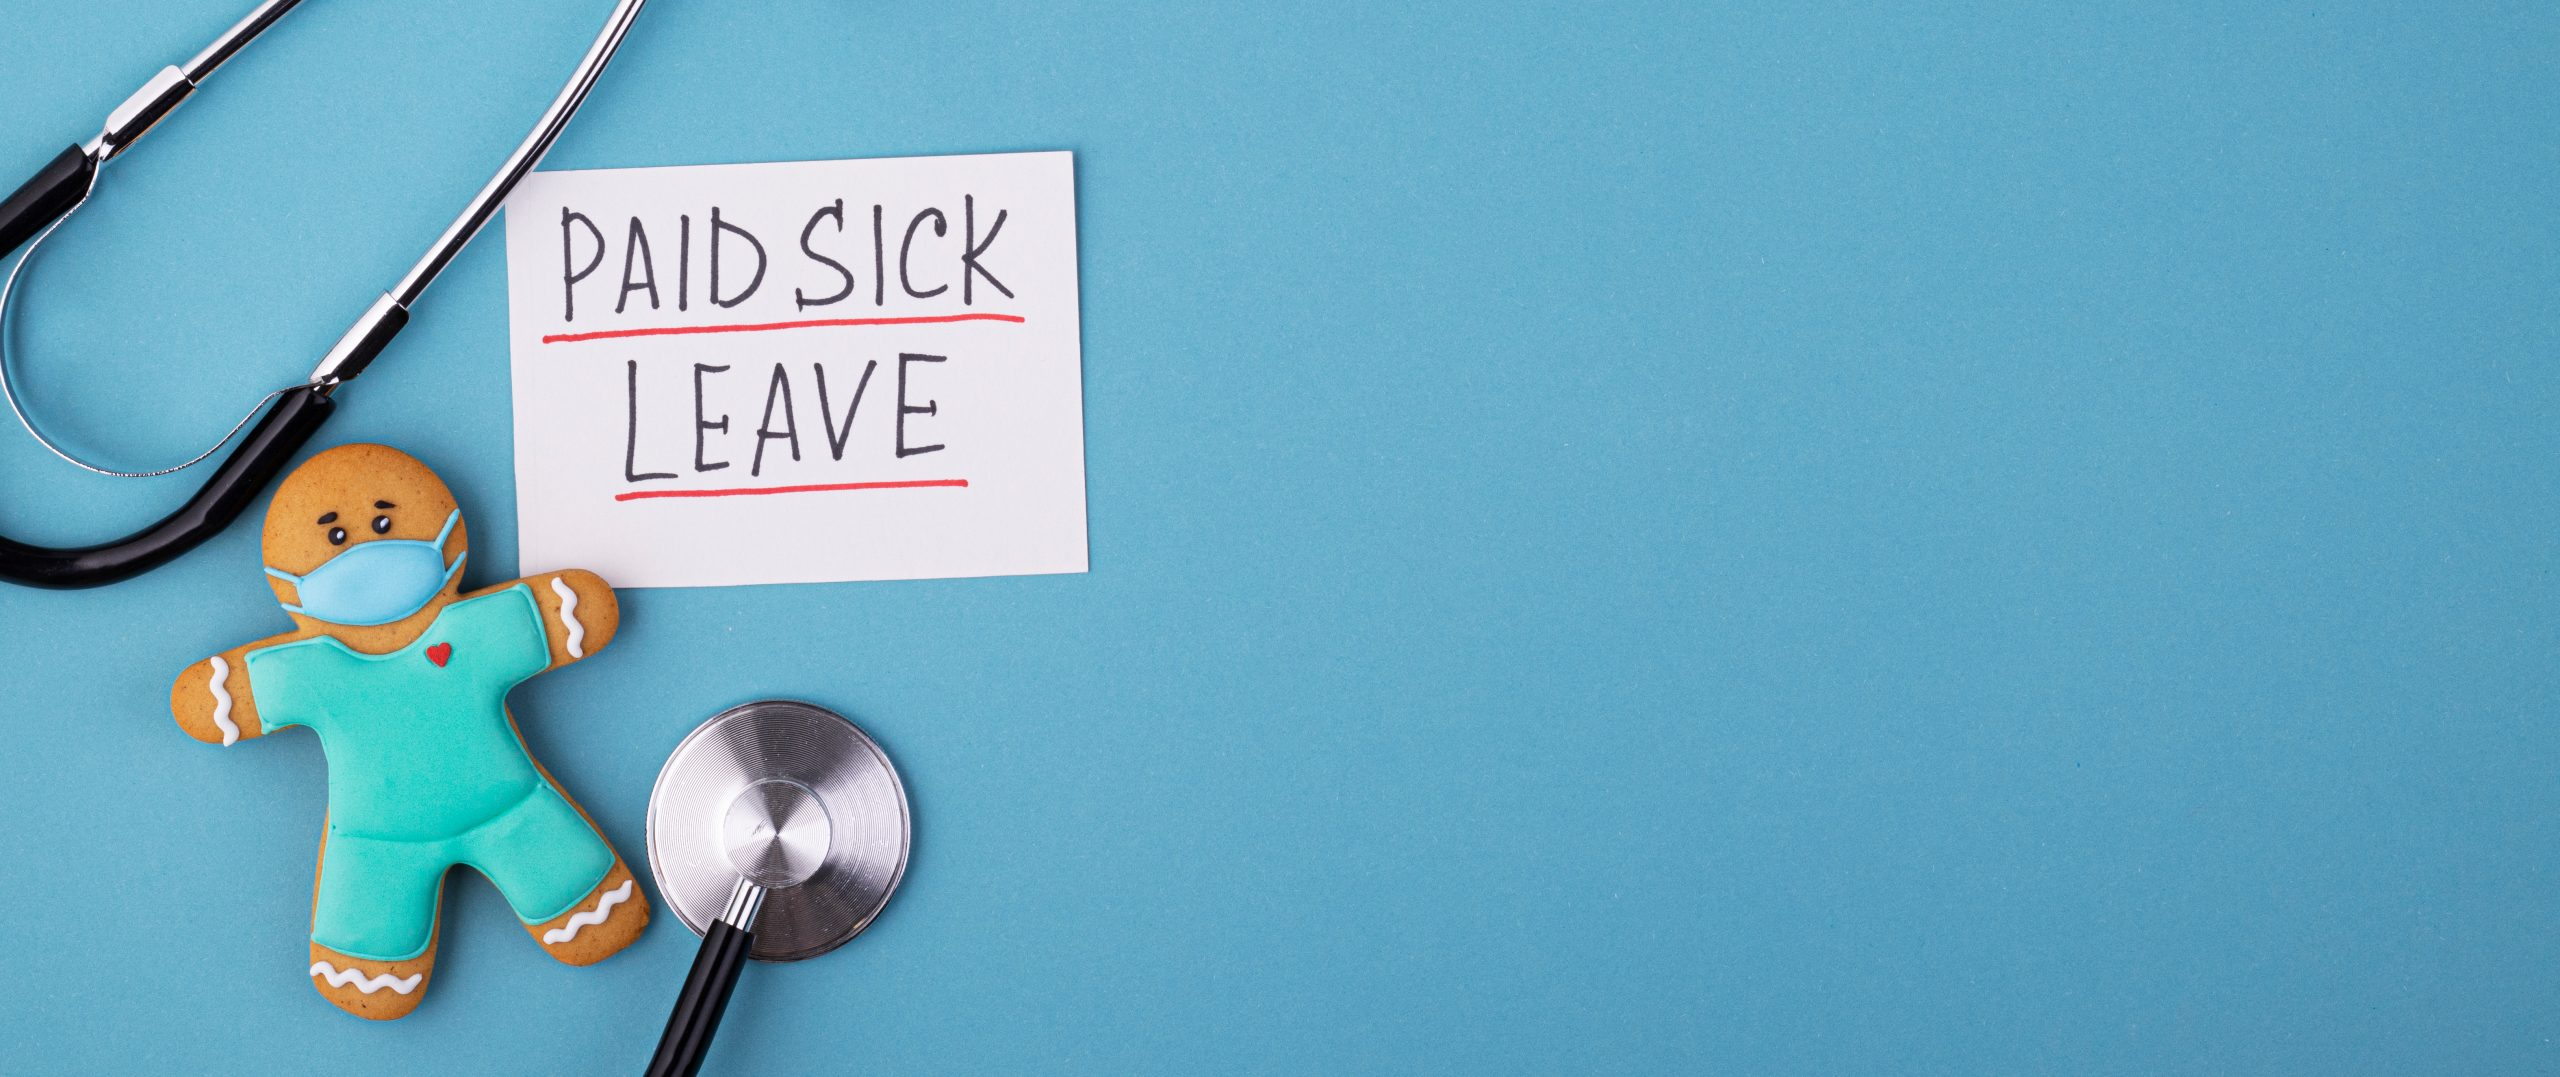 Statutory Sick Pay Scheme to be phased in over four years